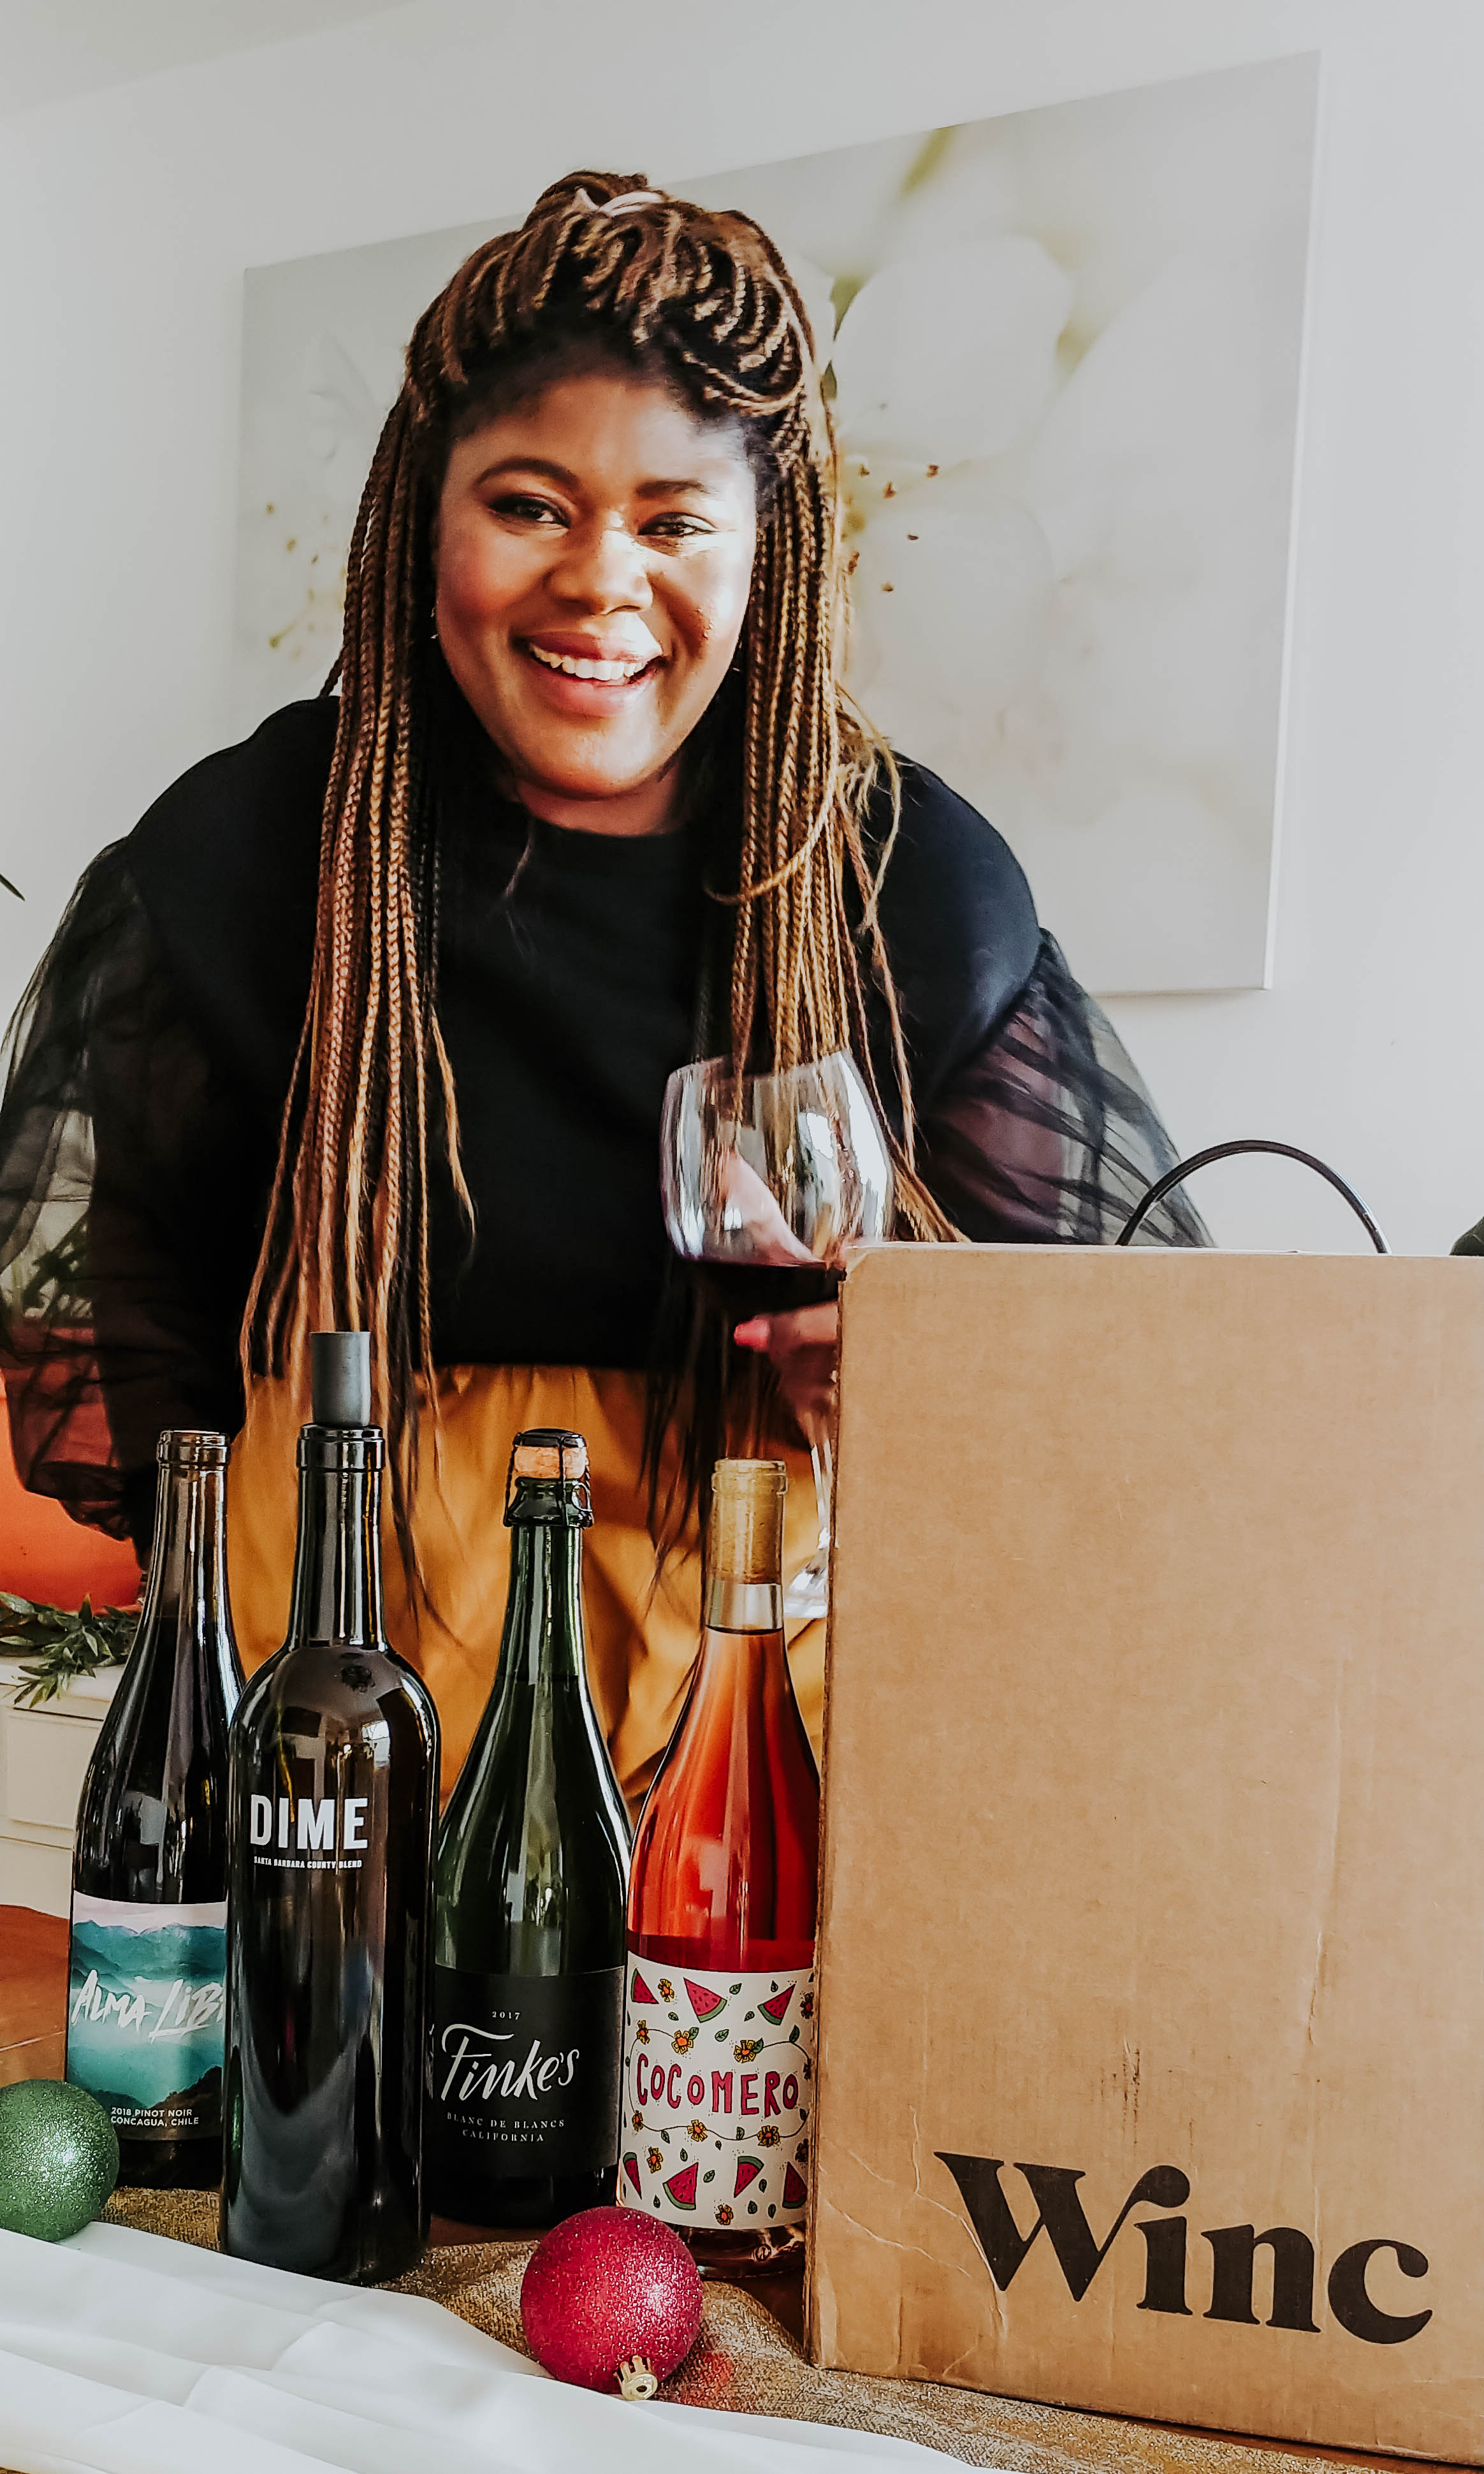 Image of Glory smiling with wine glass in hand and bottles of wine from winc.com.